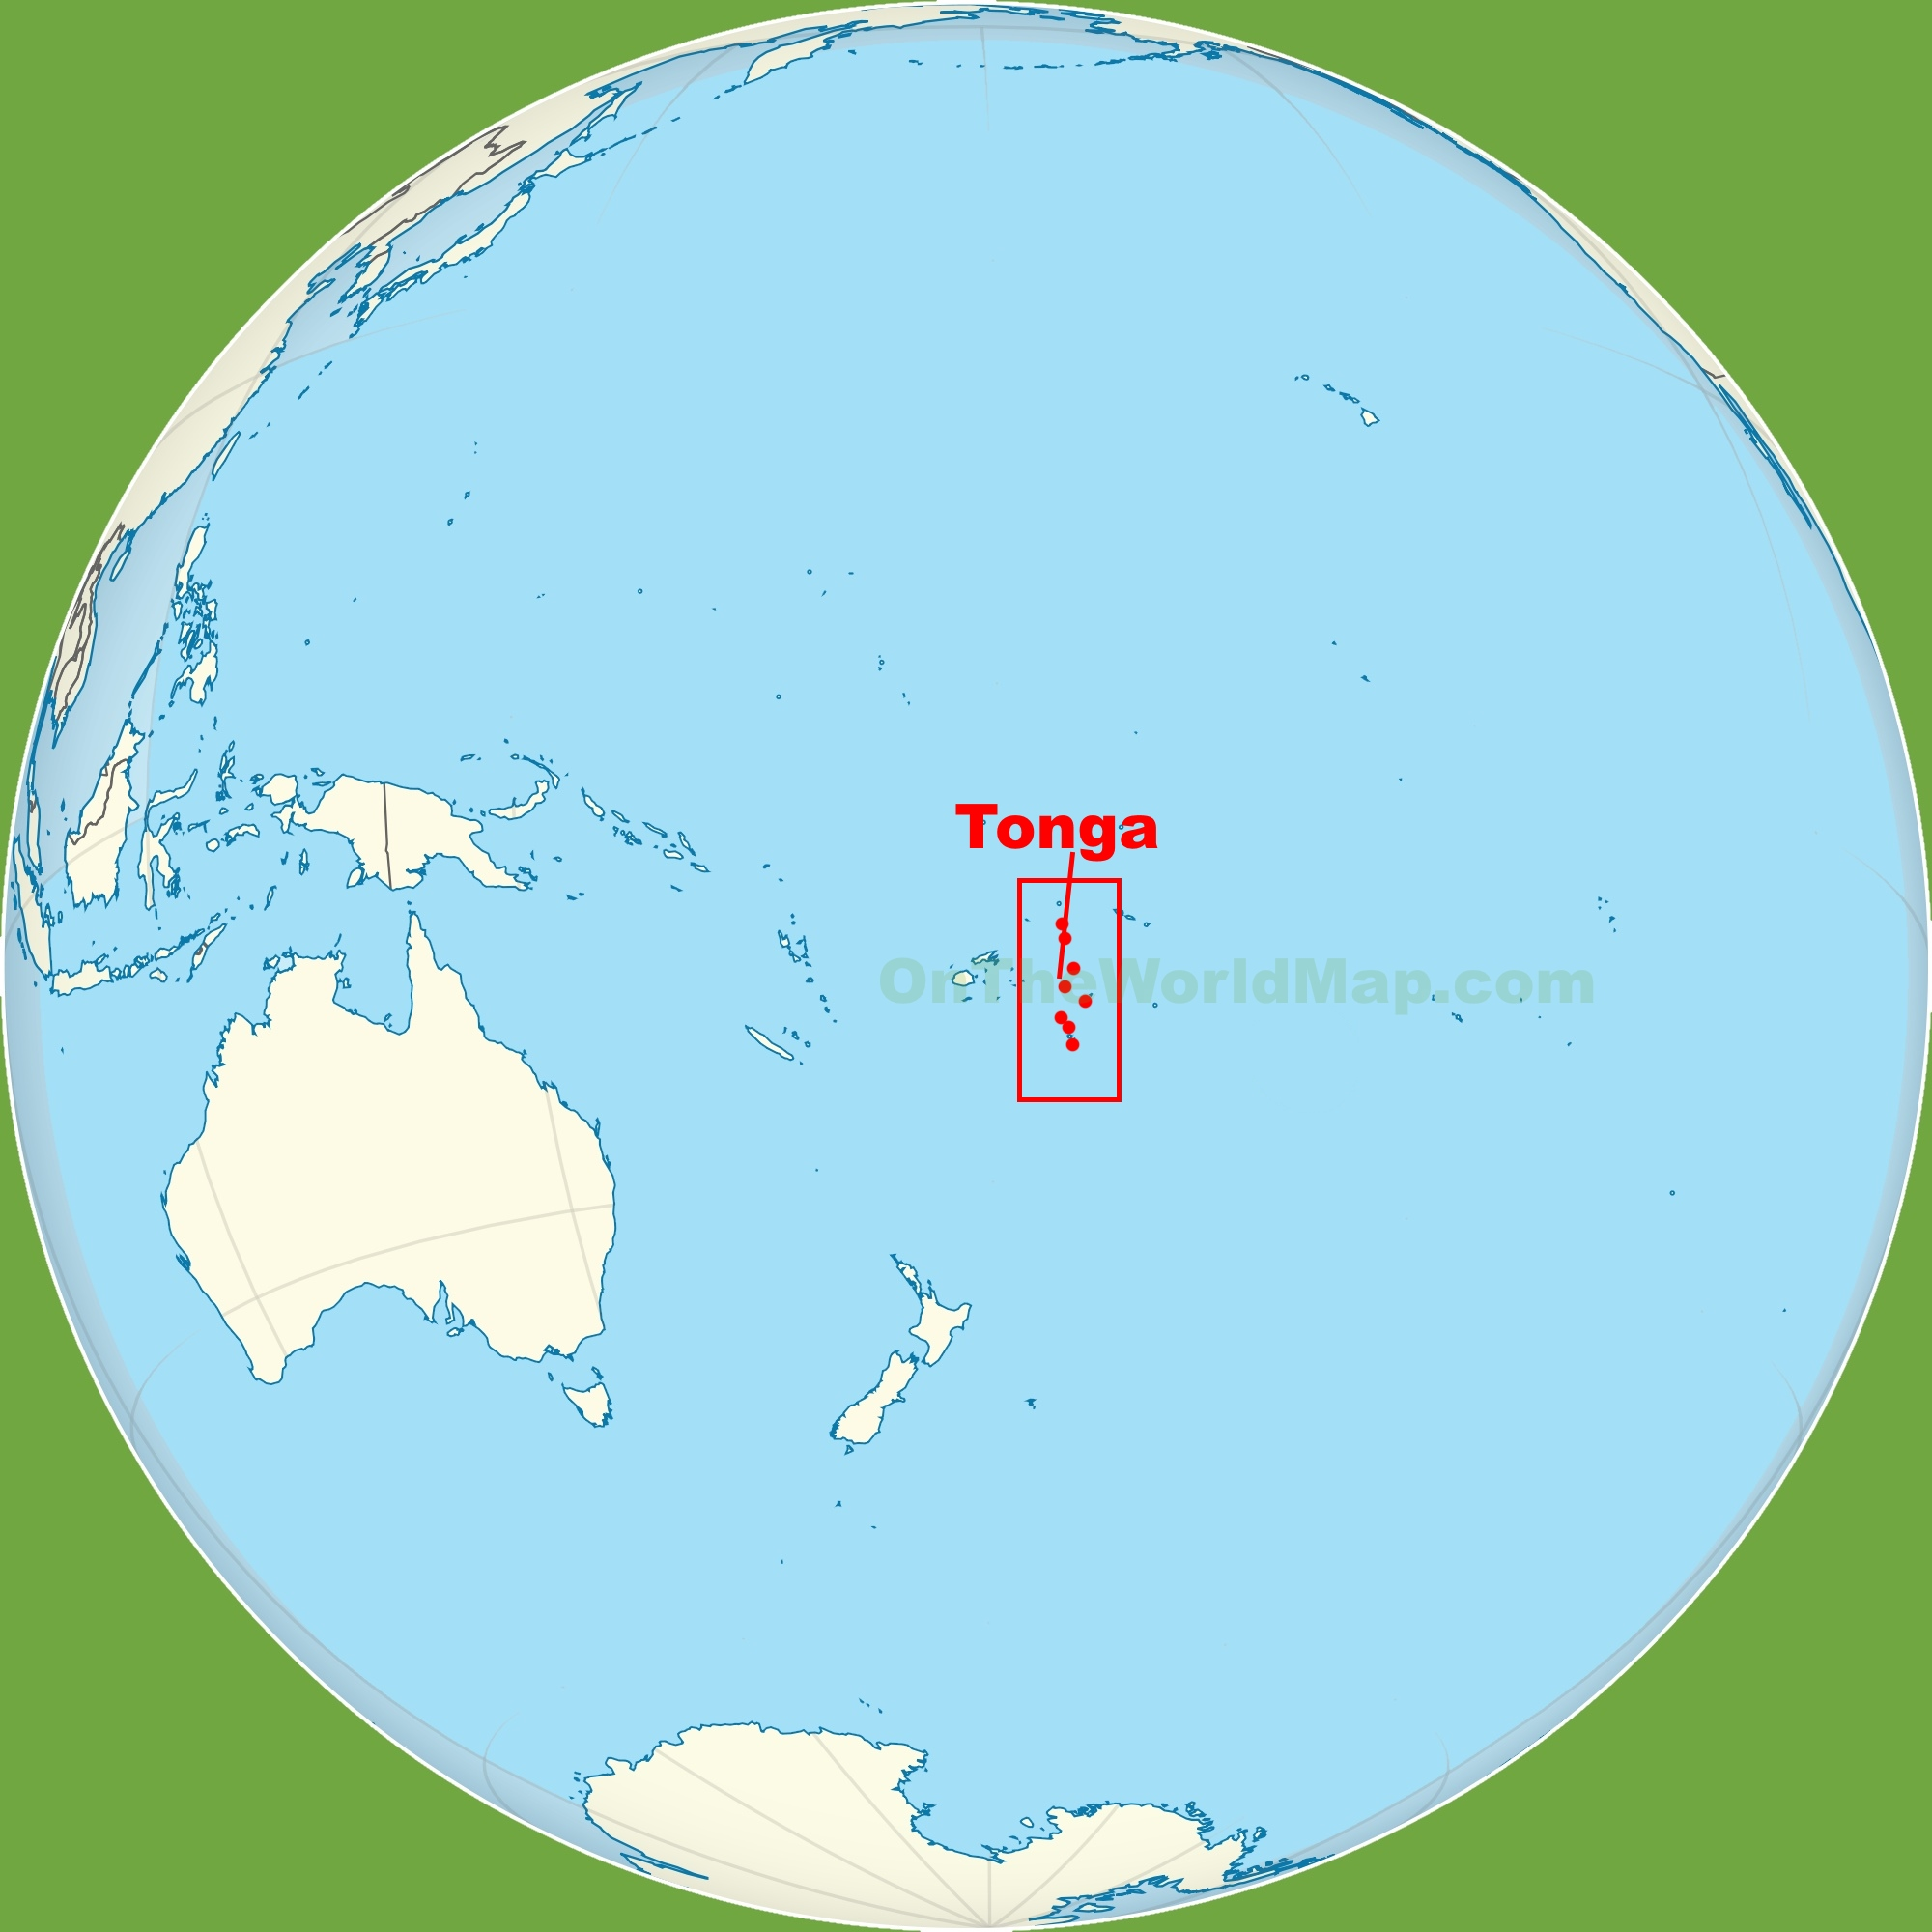 Tonga location on the Pacific Ocean map